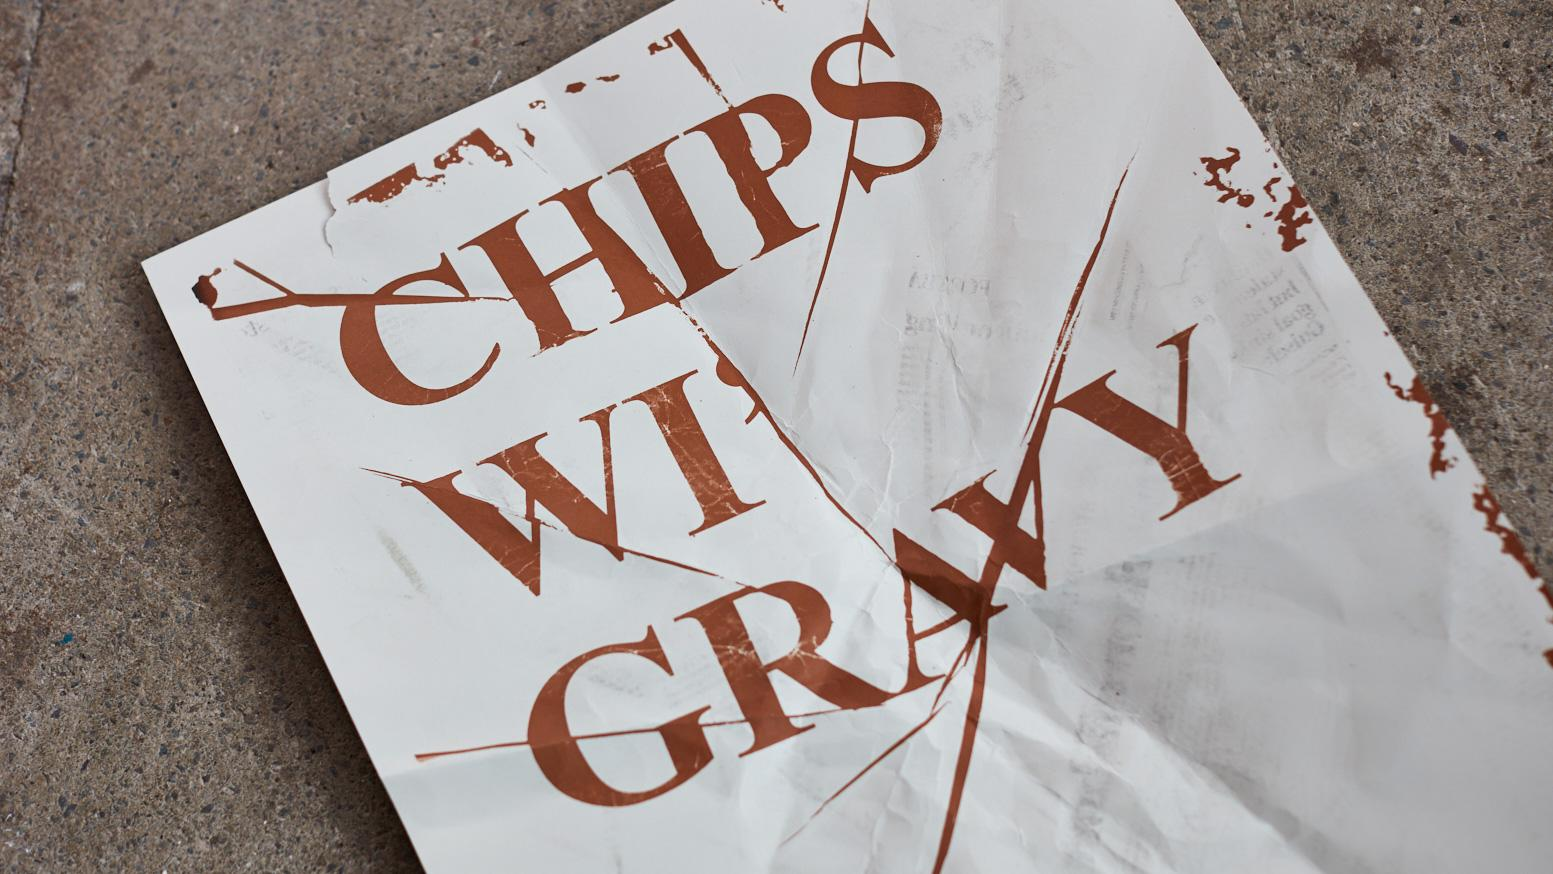 Chip sauce inks and the world's largest letterpress